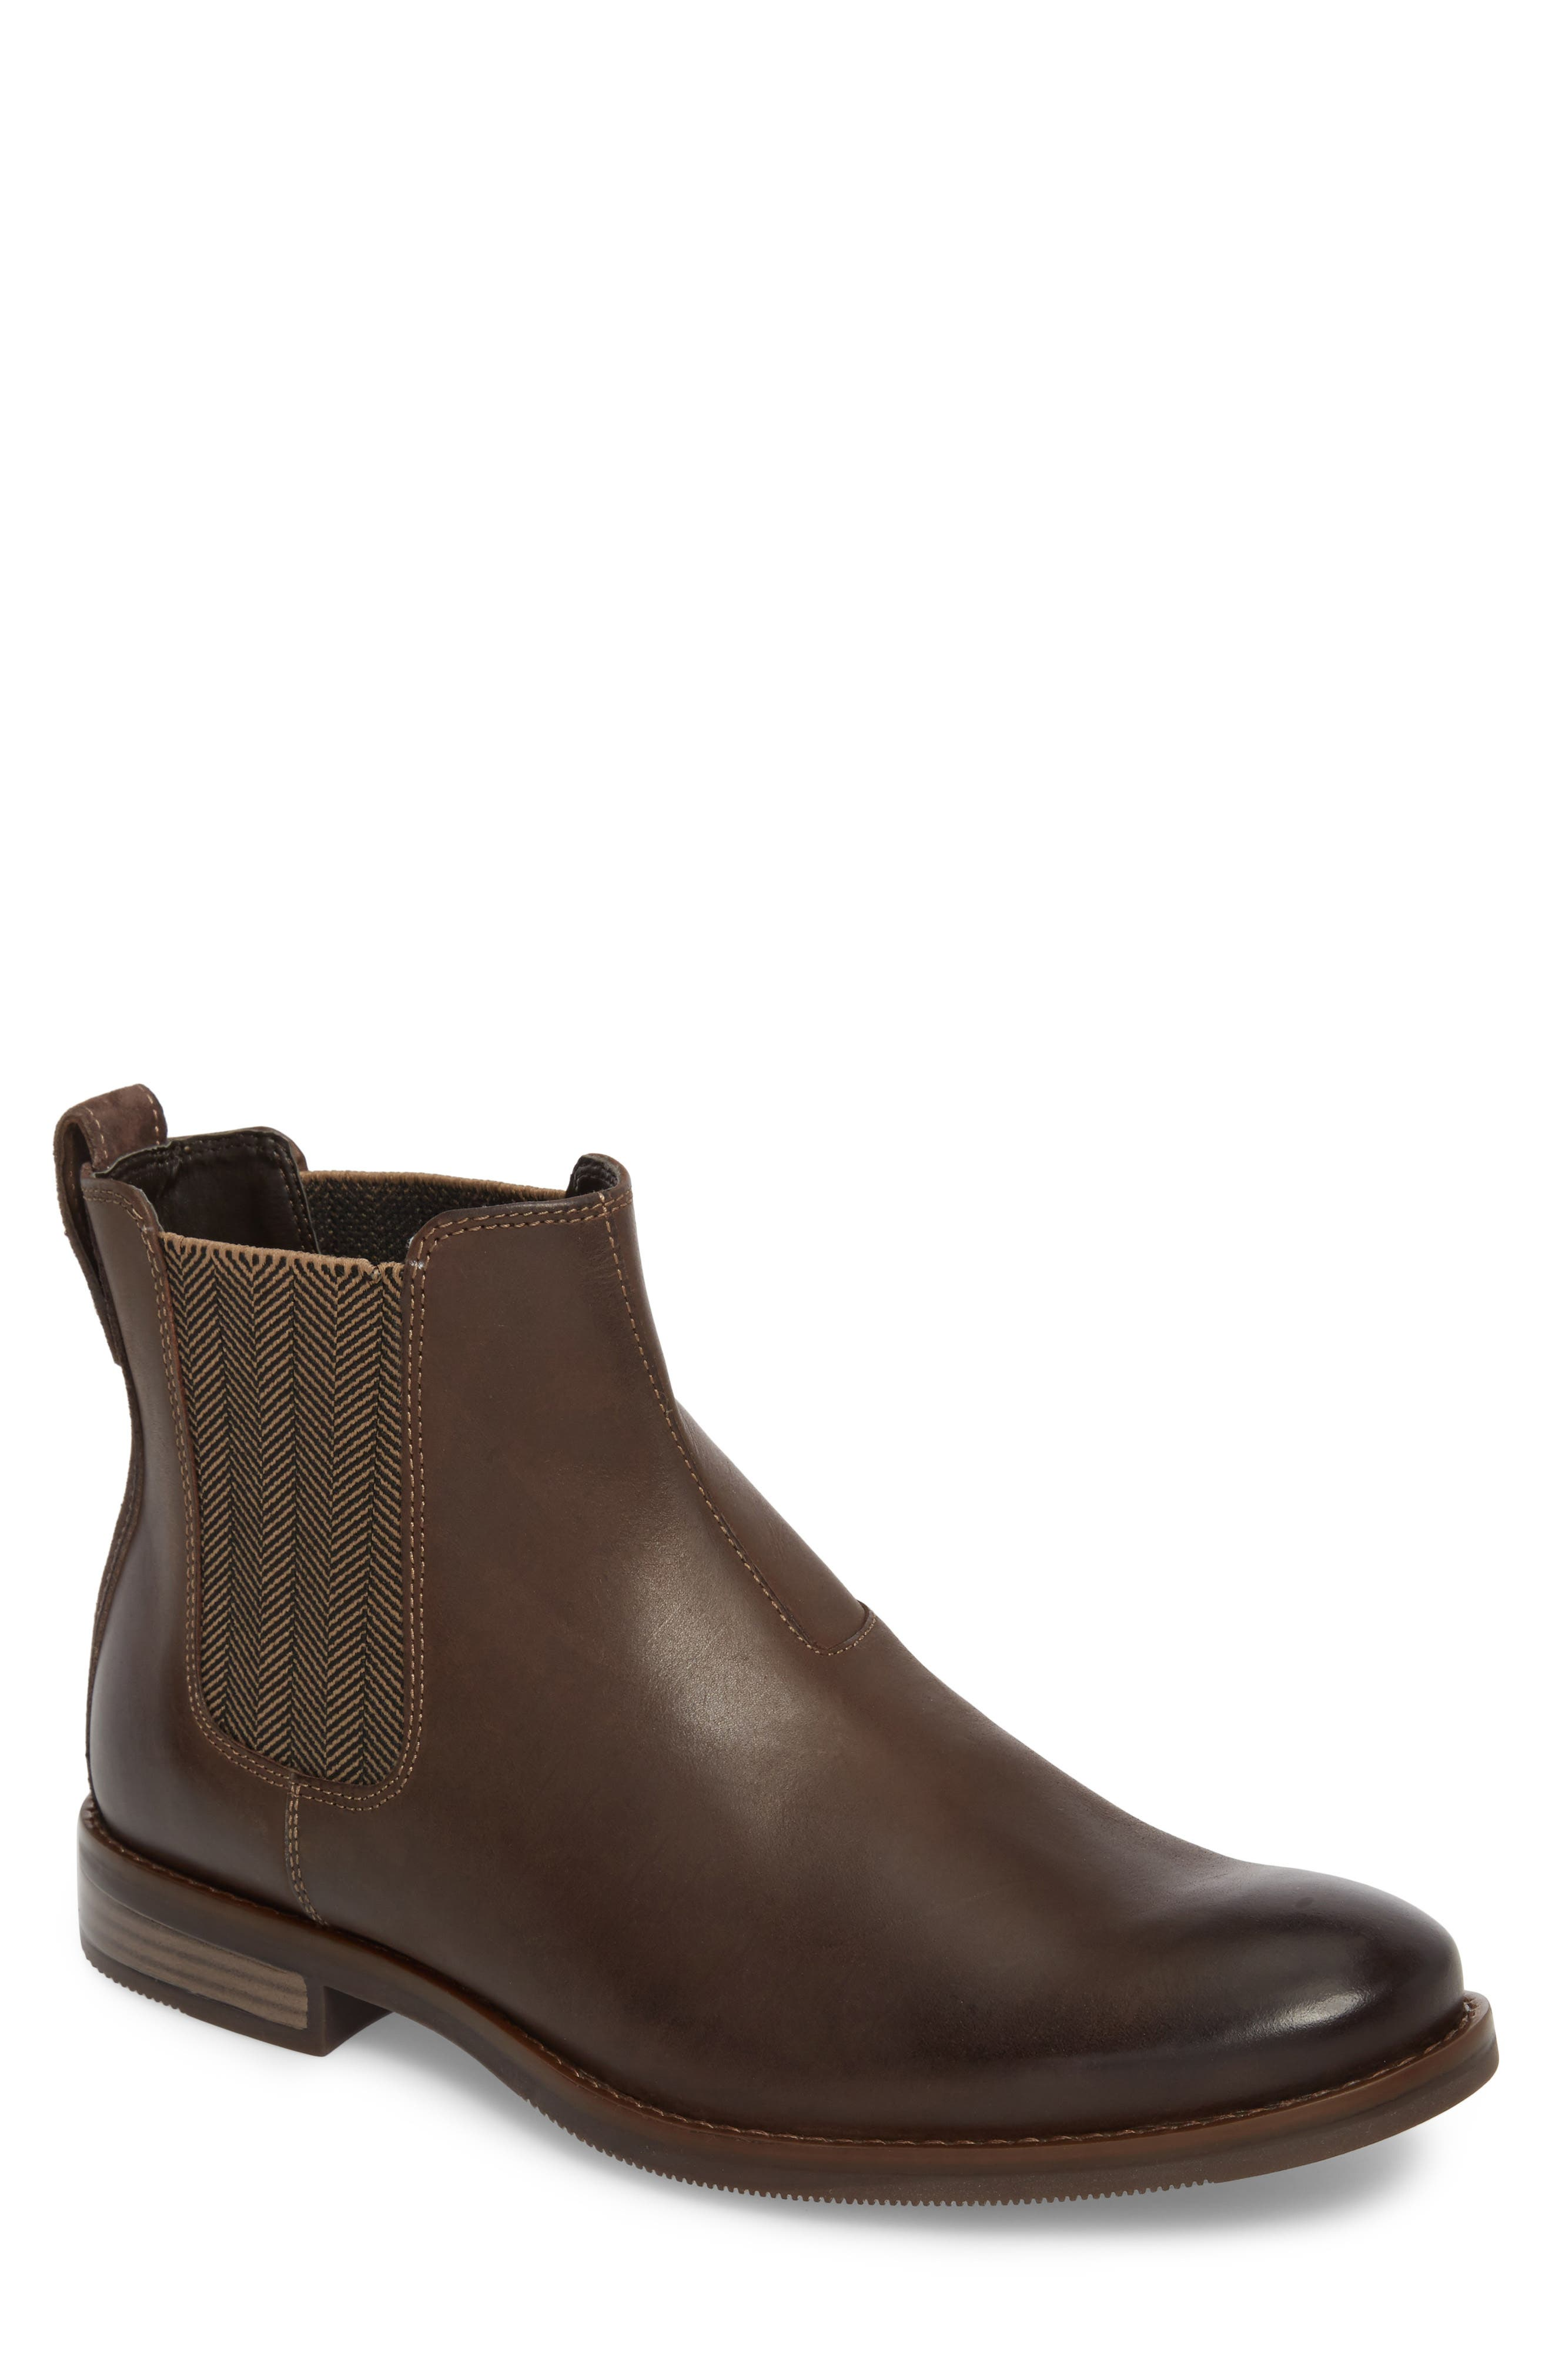 Wynstin Chelsea Boot,                             Main thumbnail 1, color,                             DARK BITTER CHOCOLATE LEATHER